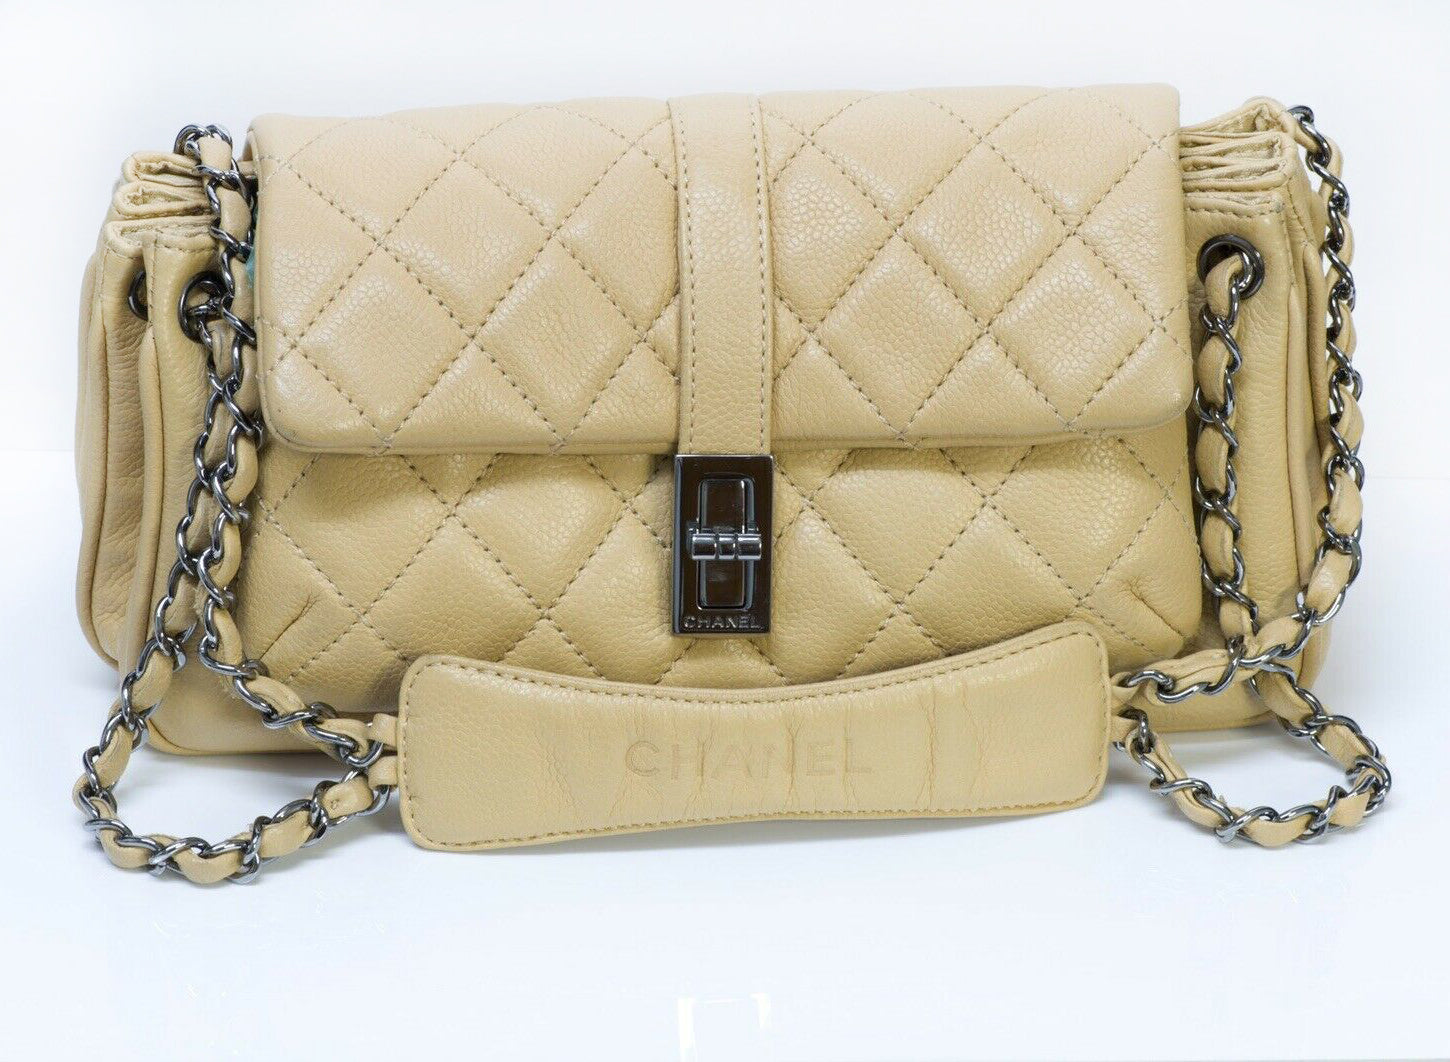 CHANEL CC Quilted Leather Mademoiselle Shoulder Bag